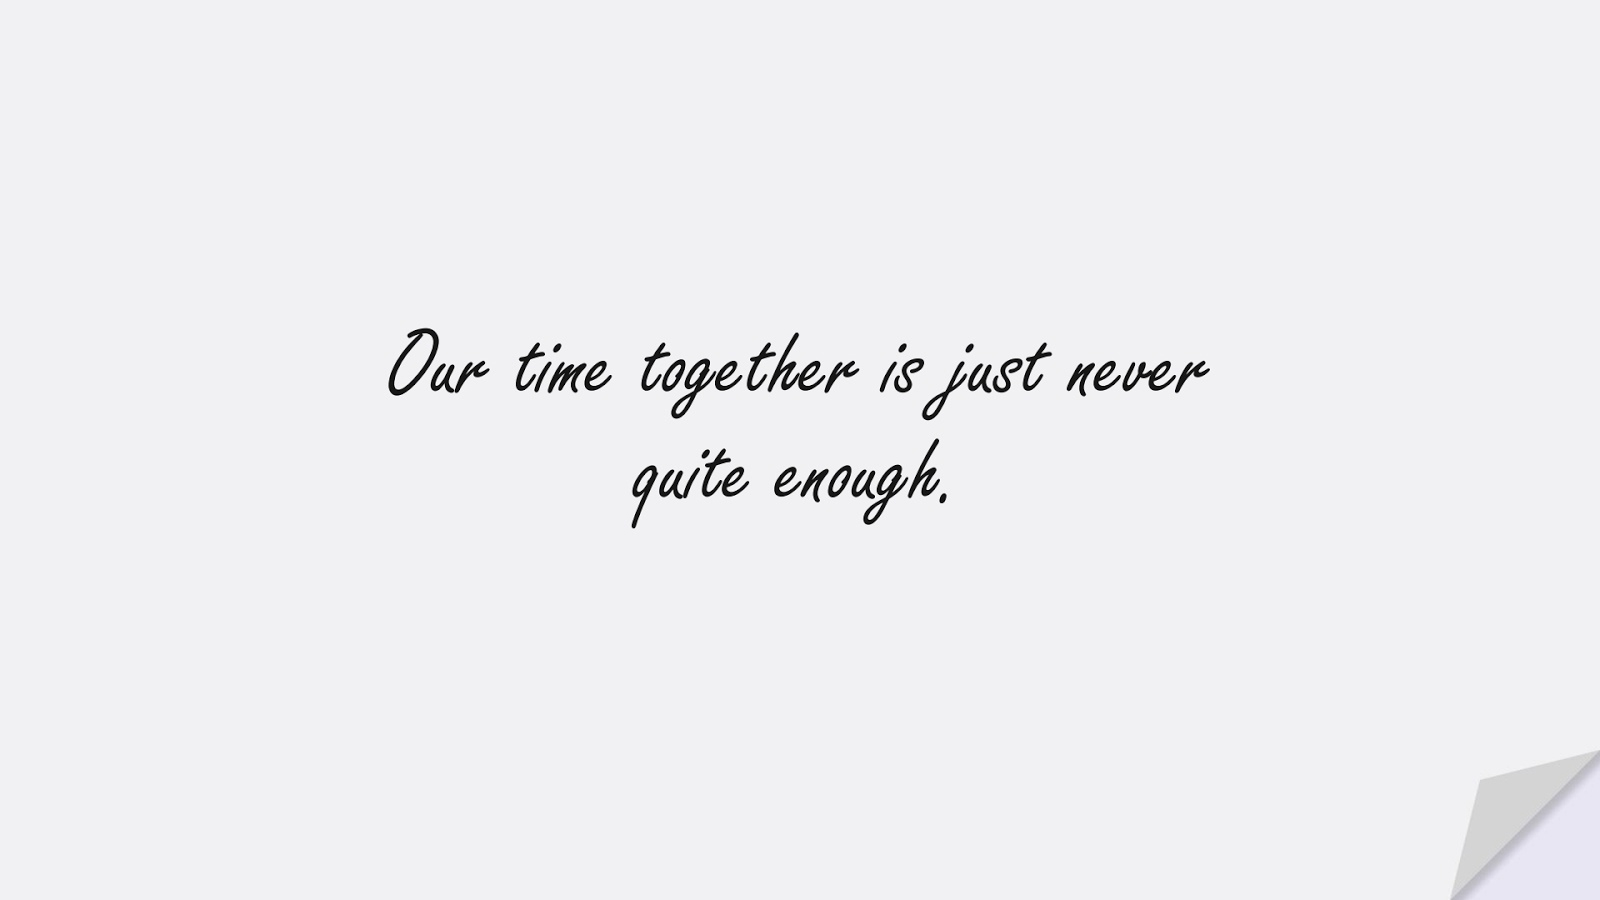 Our time together is just never quite enough.FALSE